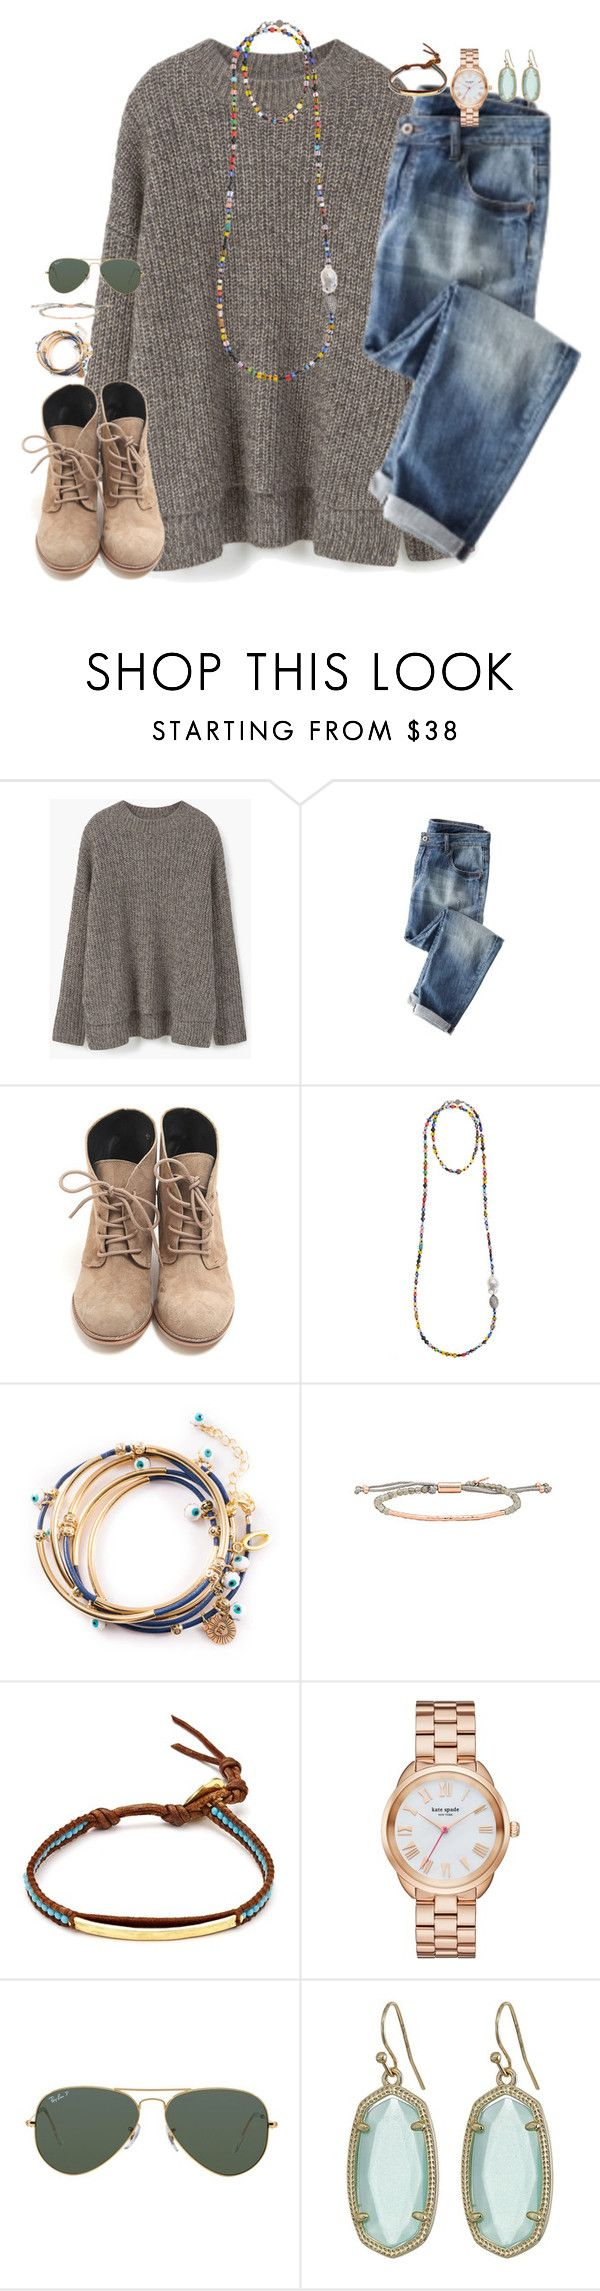 """an apple day keeps anyone away if u throw it hard enough"" by kaley-ii ❤ liked on Polyvore featuring MANGO, Bettina Duncan, Gorjana, Chan Luu, Kate Spade, Ray-Ban and Kendra Scott"